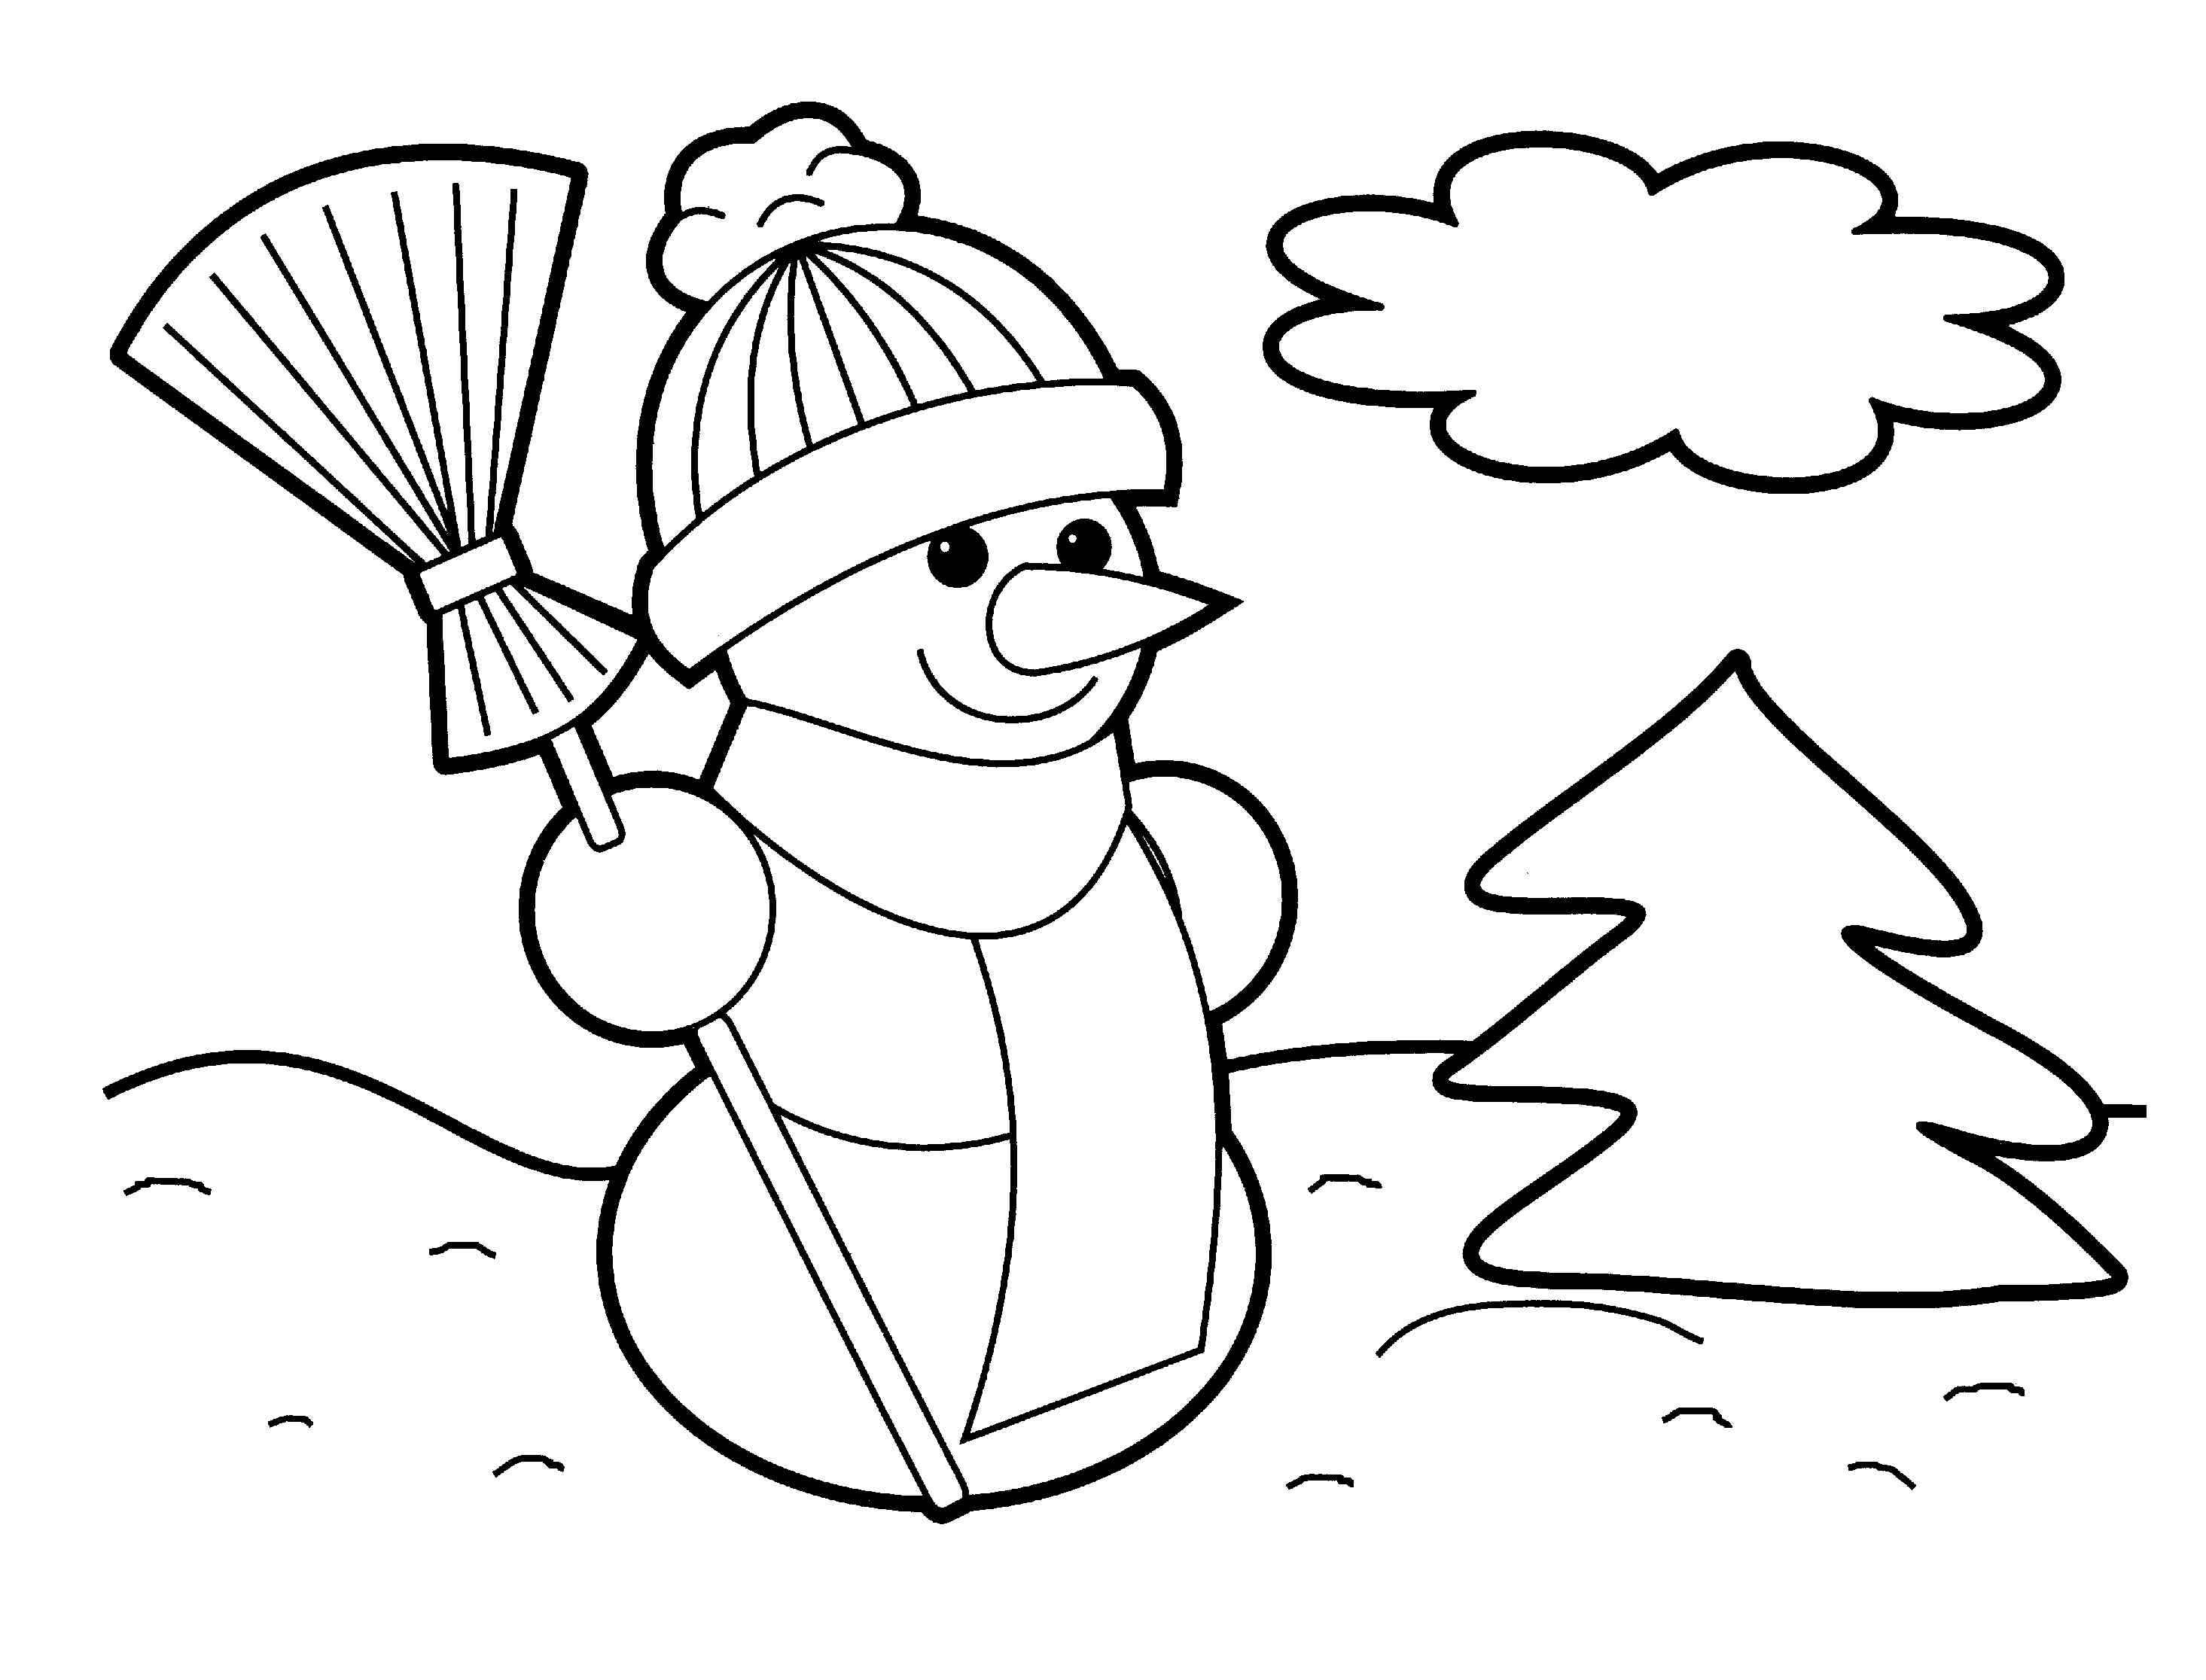 Elf Coloring Pages Printable Coloring Design Elf Coloring Pages Free Book Tremendous Printable